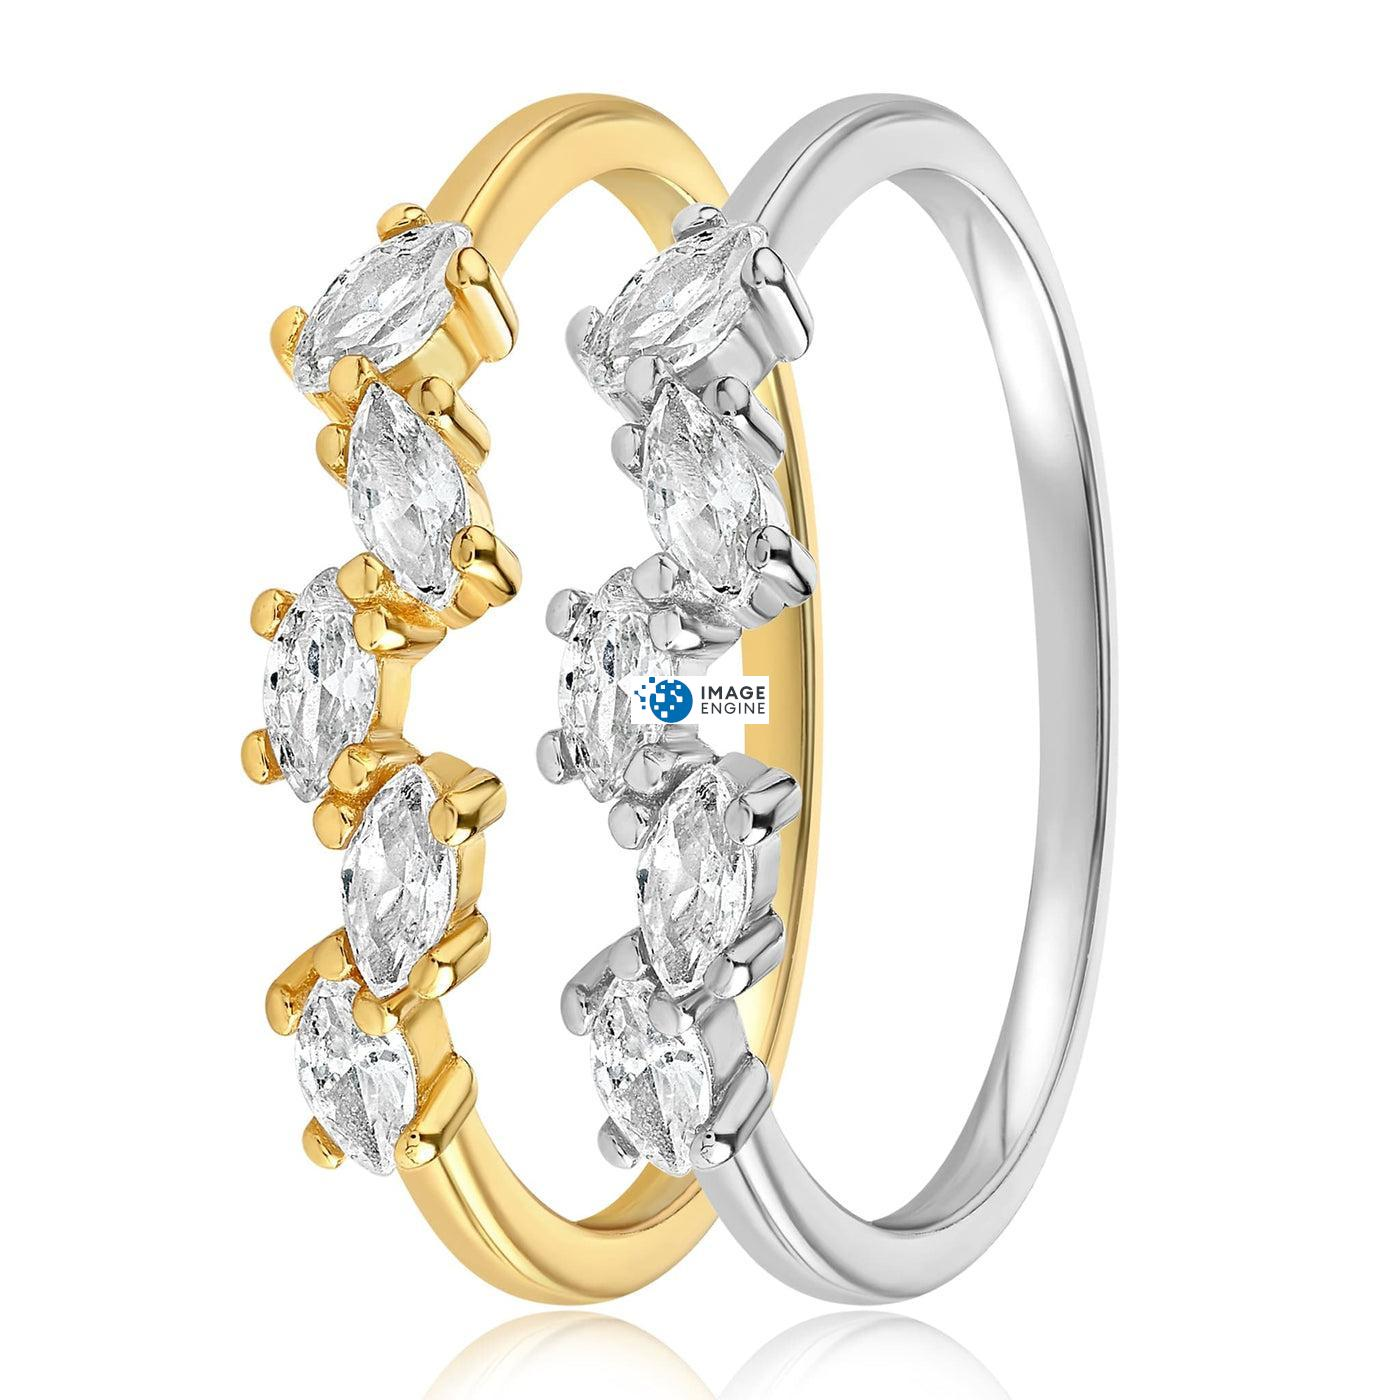 Genna Round Cut Ring - Side by Side - 18K Yellow Gold and 925 Sterling Silver